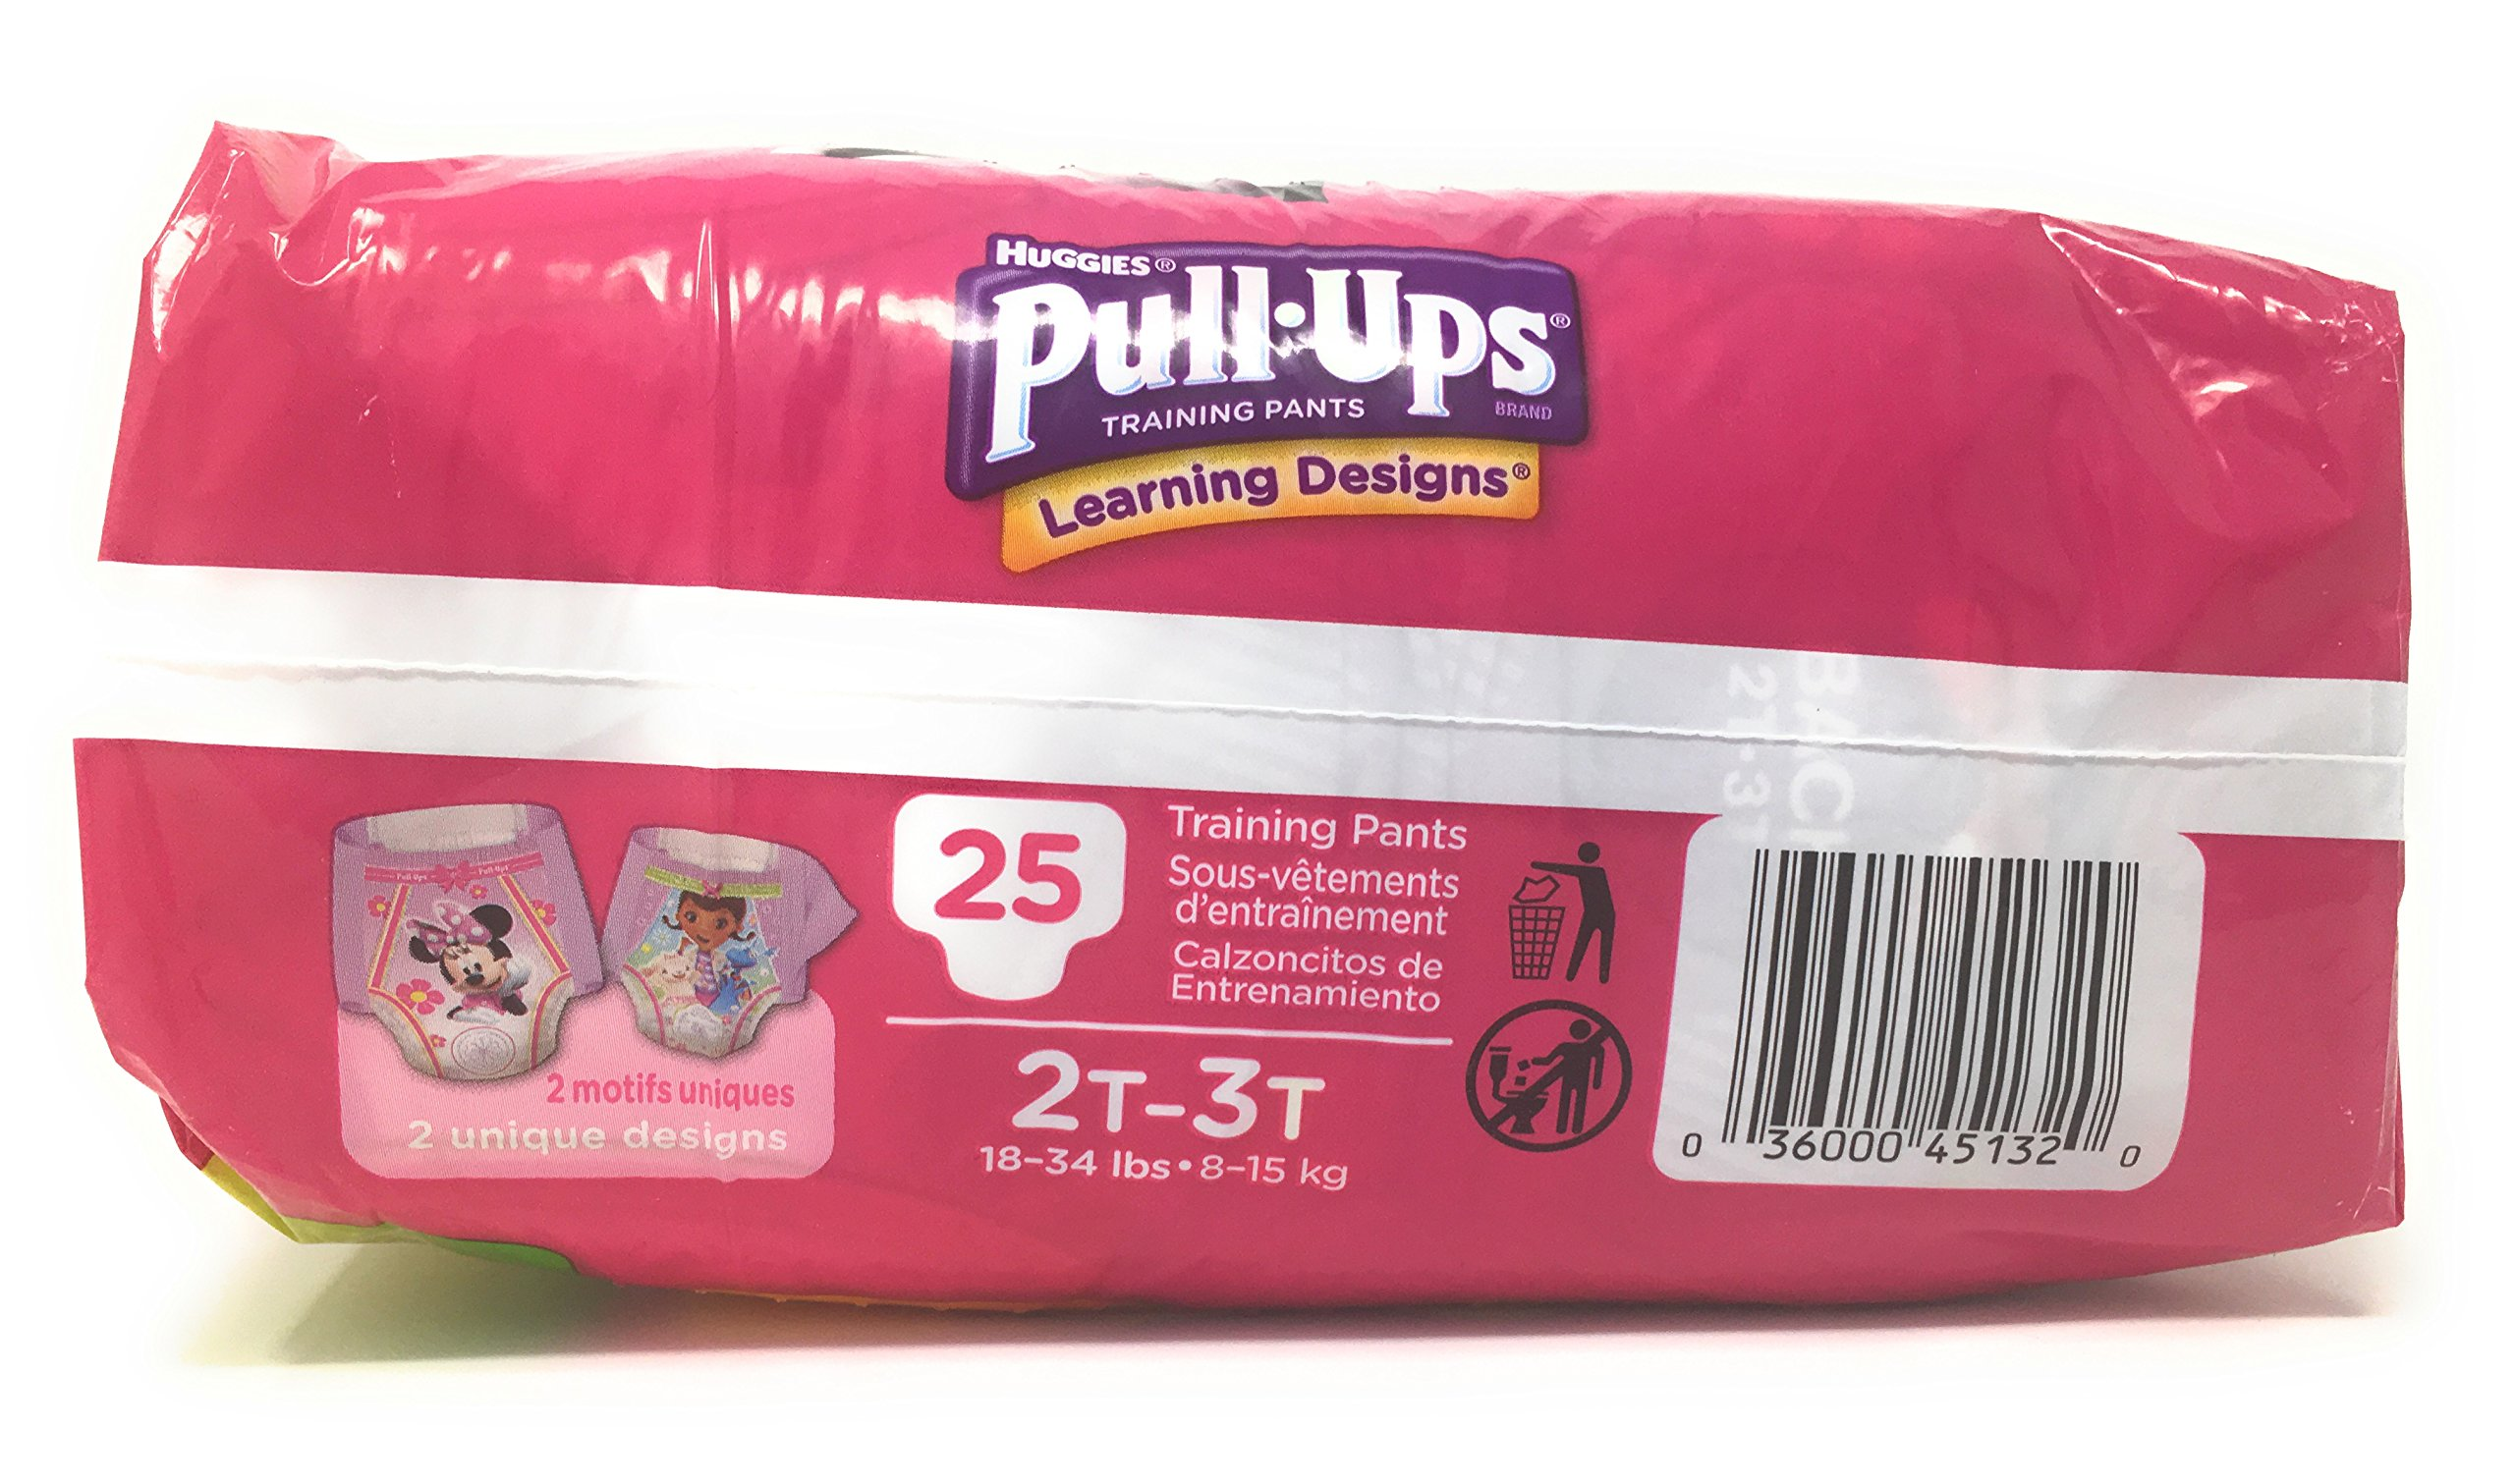 Pull-Ups Learning Designs Training Pants for Girls, 2T-3T